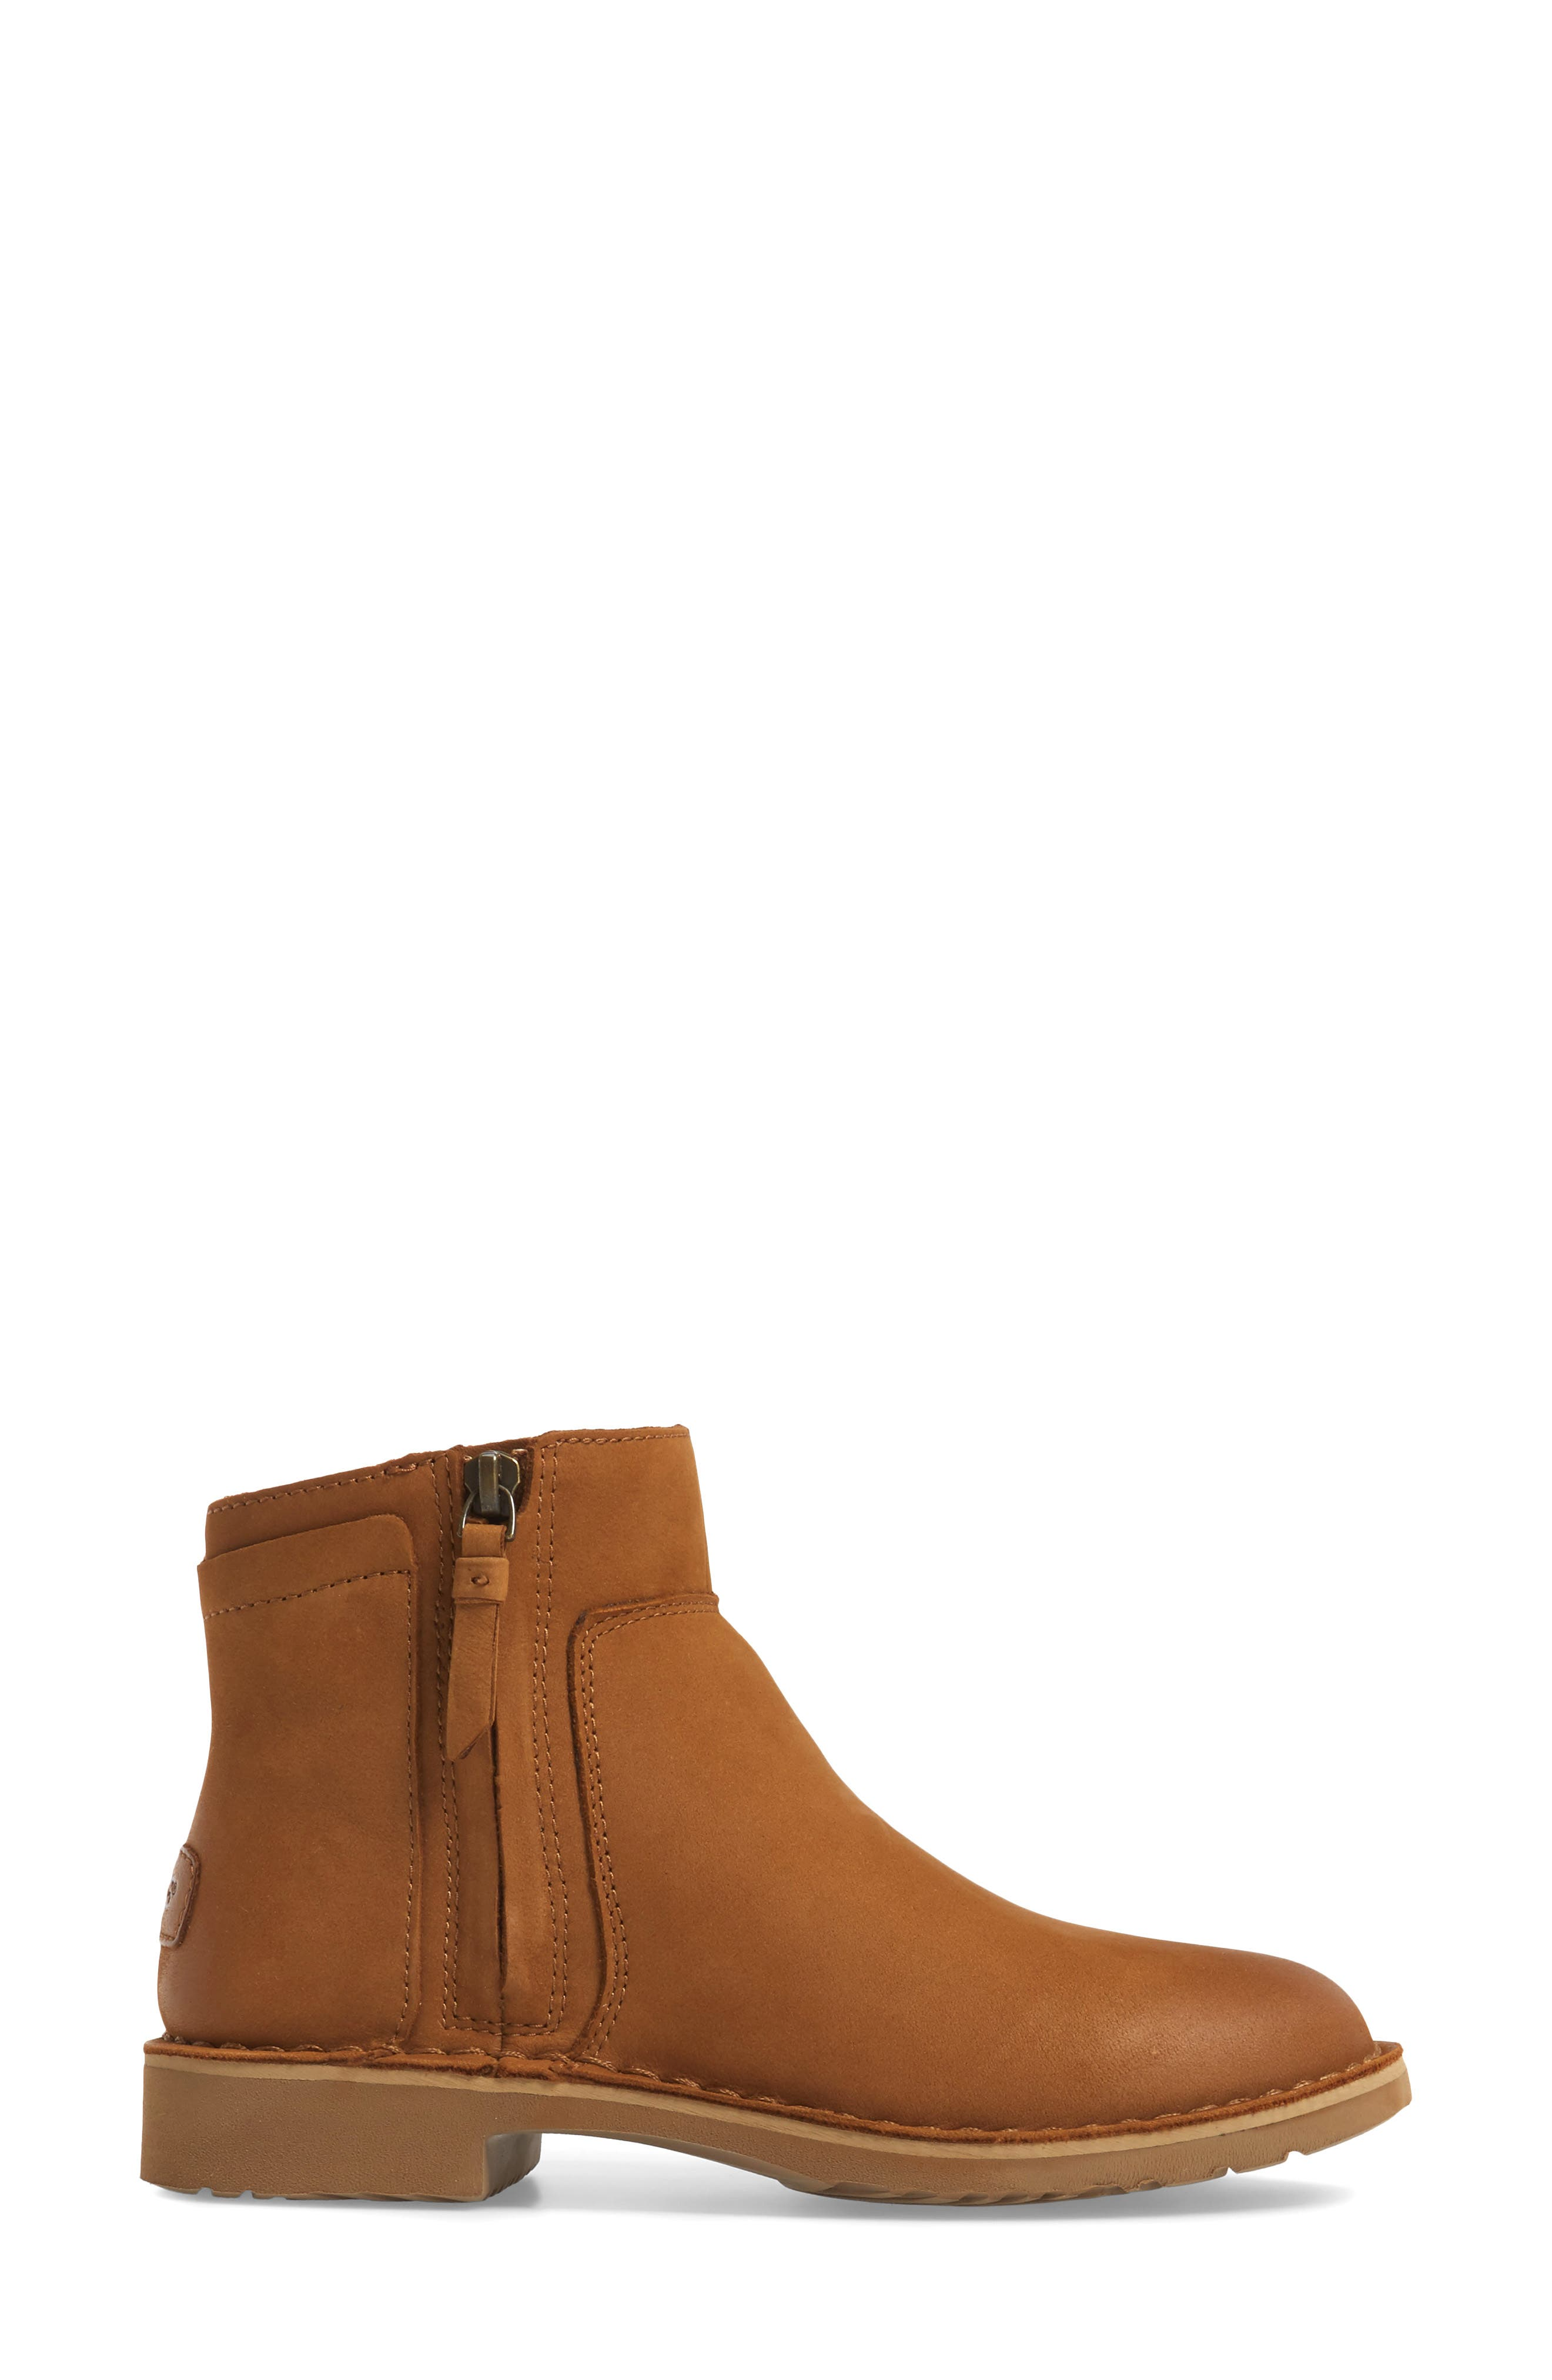 Alternate Image 3  - UGG® Rea Bootie (Women)